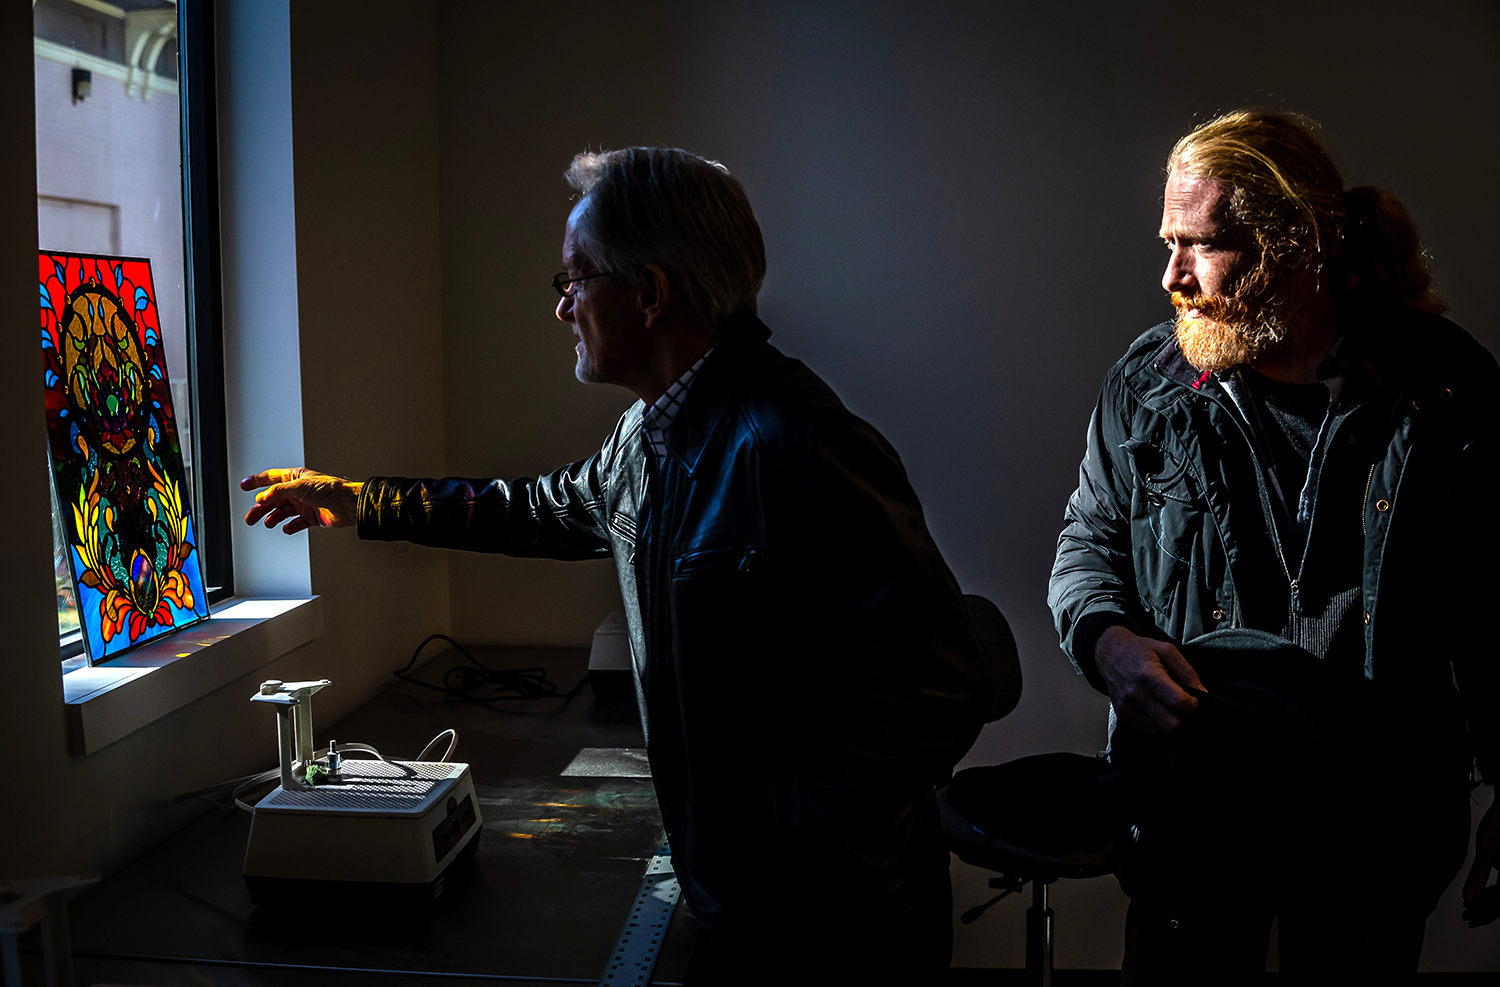 Artist Justin Behnke, right, talks with his father, Lee Behnke, as the sun lights up a late victorian style of stained glass art he made on display in the new Baima Glass Studio inside the Springfield Art Association's new studio building at 815 North 5th Street during an open house after a ribbon cutting for the new facility, Saturday, Jan. 5, 2019, in Springfield, Ill. Justin Behnke will be teaching stained glass classes in the new studio space. [Justin L. Fowler/The State Journal-Register]